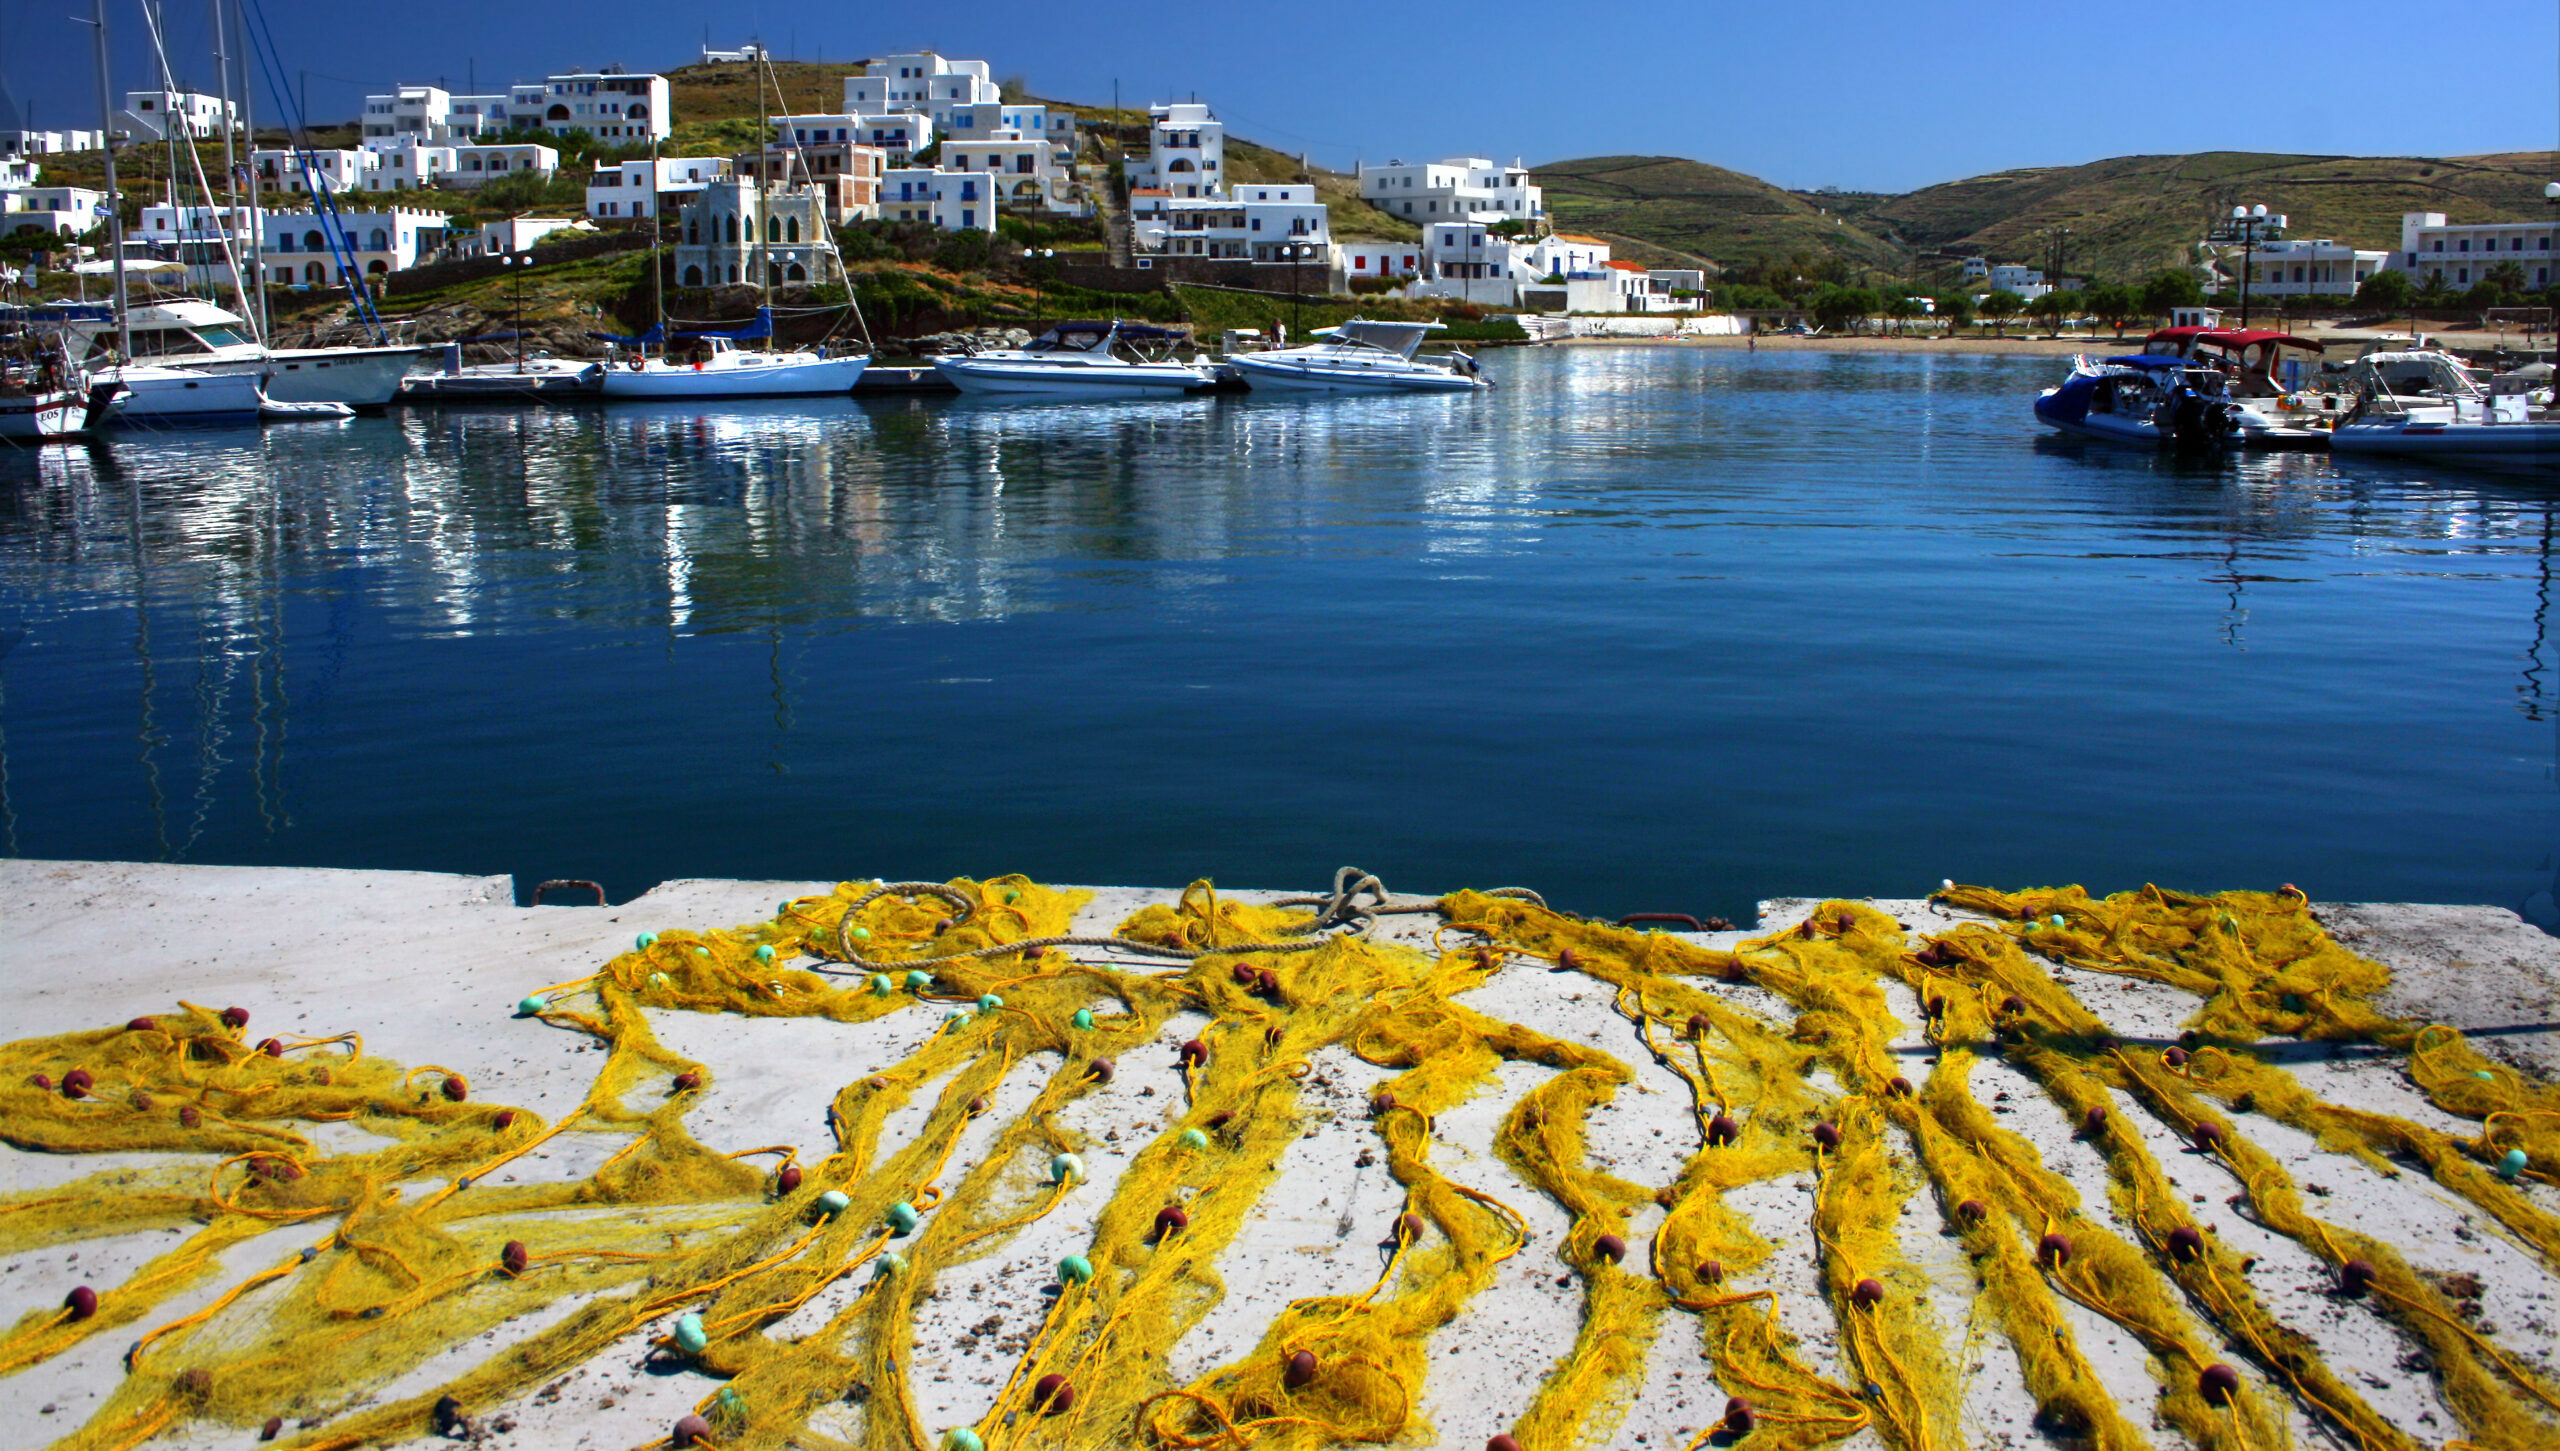 Kythnos: The Cycladic island with the painted walls